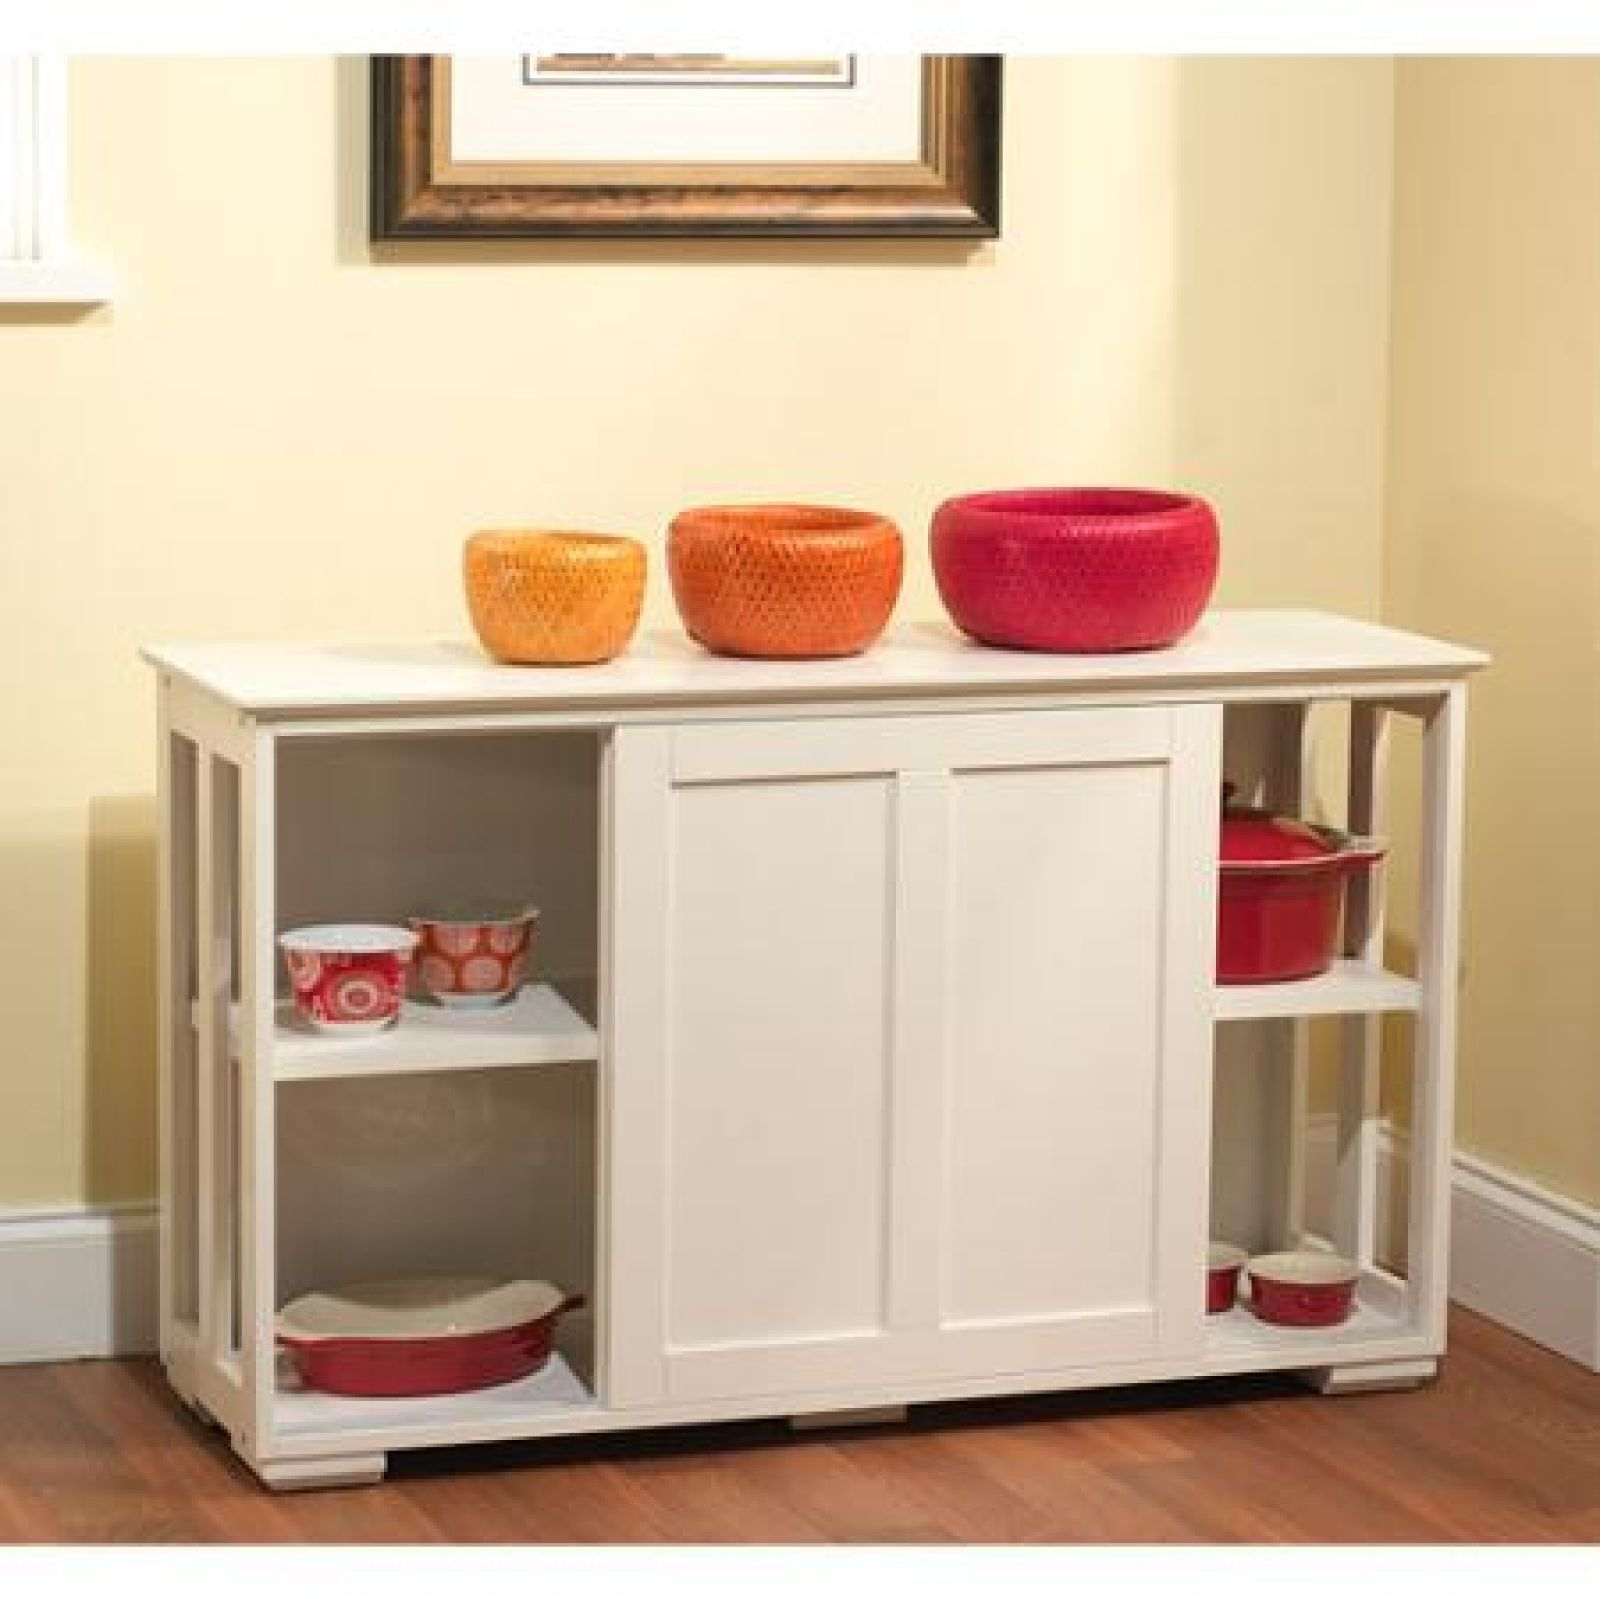 Storage Kitchen Cabinet: White Kitchen Storage Cabinet Stackable Sliding Door Wood